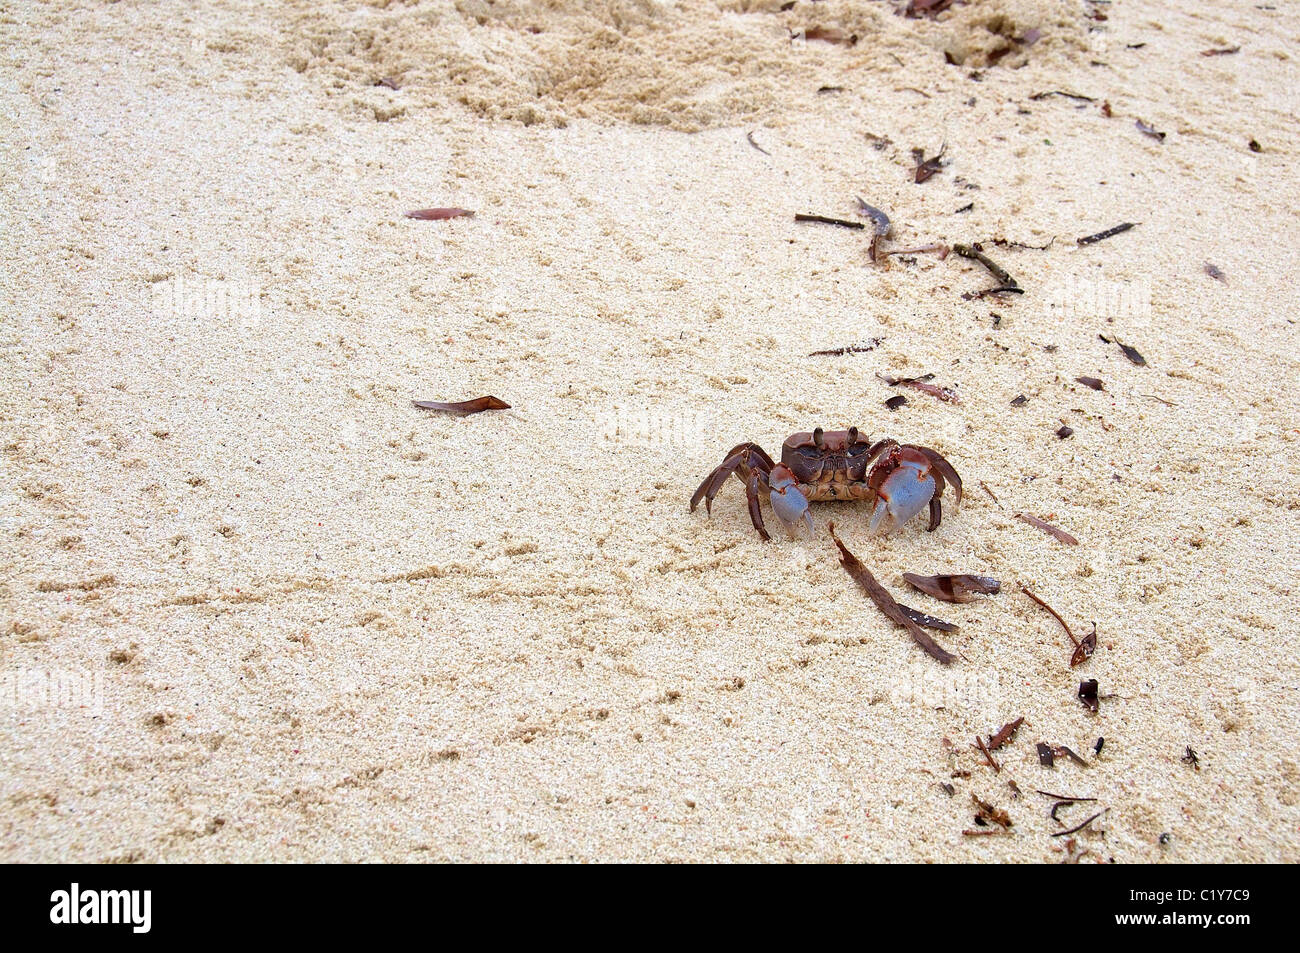 Ghost crab, horned ghost crab or horn-eyed ghost crab (Ocypode ceratophthalma) on clean beach sand, Denis island, Indian Ocean, Stock Photo